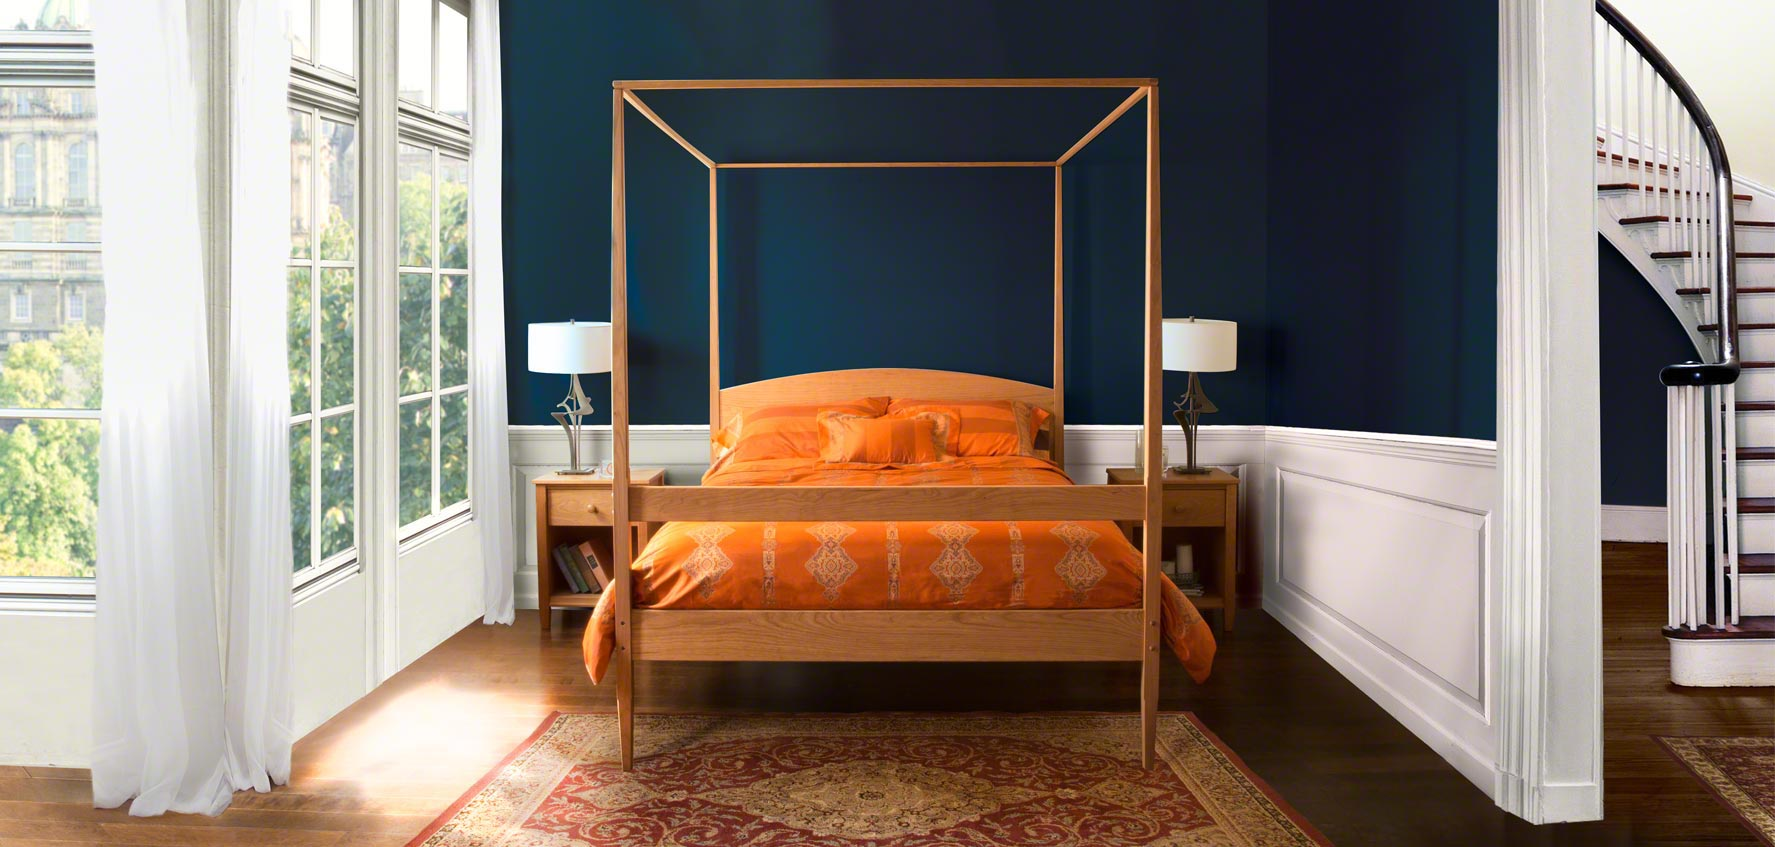 Shaker Bedroom Furniture | Award for Sustainably Harvested Wood